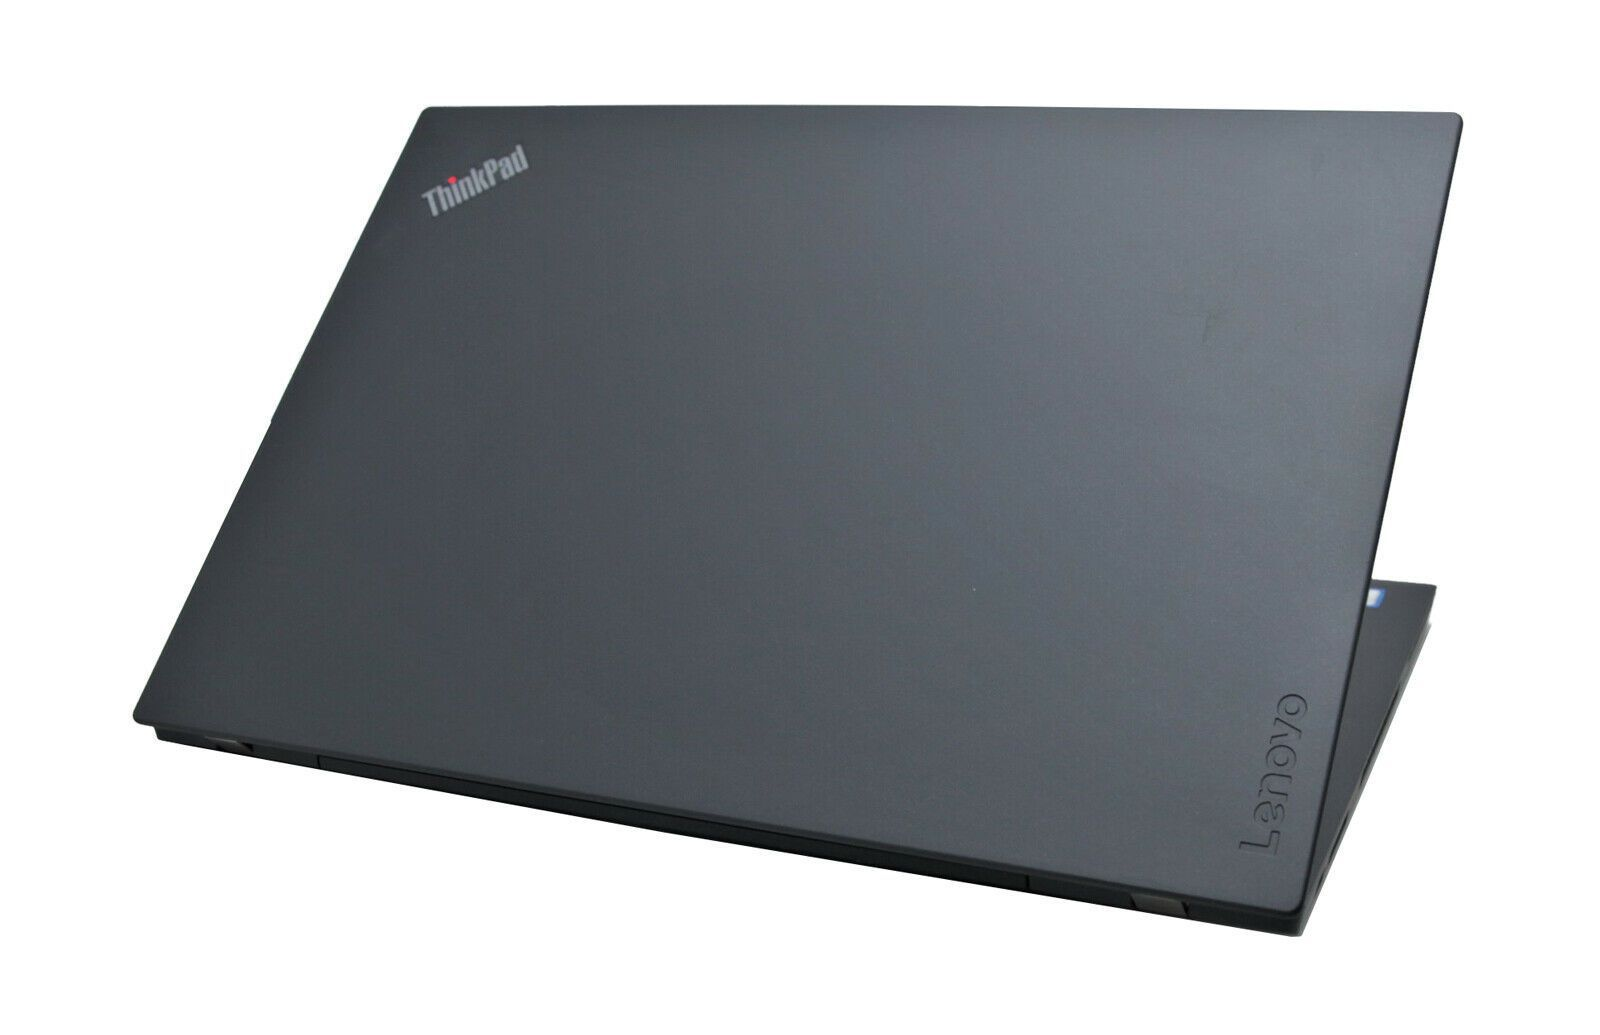 Lenovo Thinkpad T480 IPS Laptop: Core i7-8650U, 512GB SSD, 16GB RAM, Warranty - CruiseTech